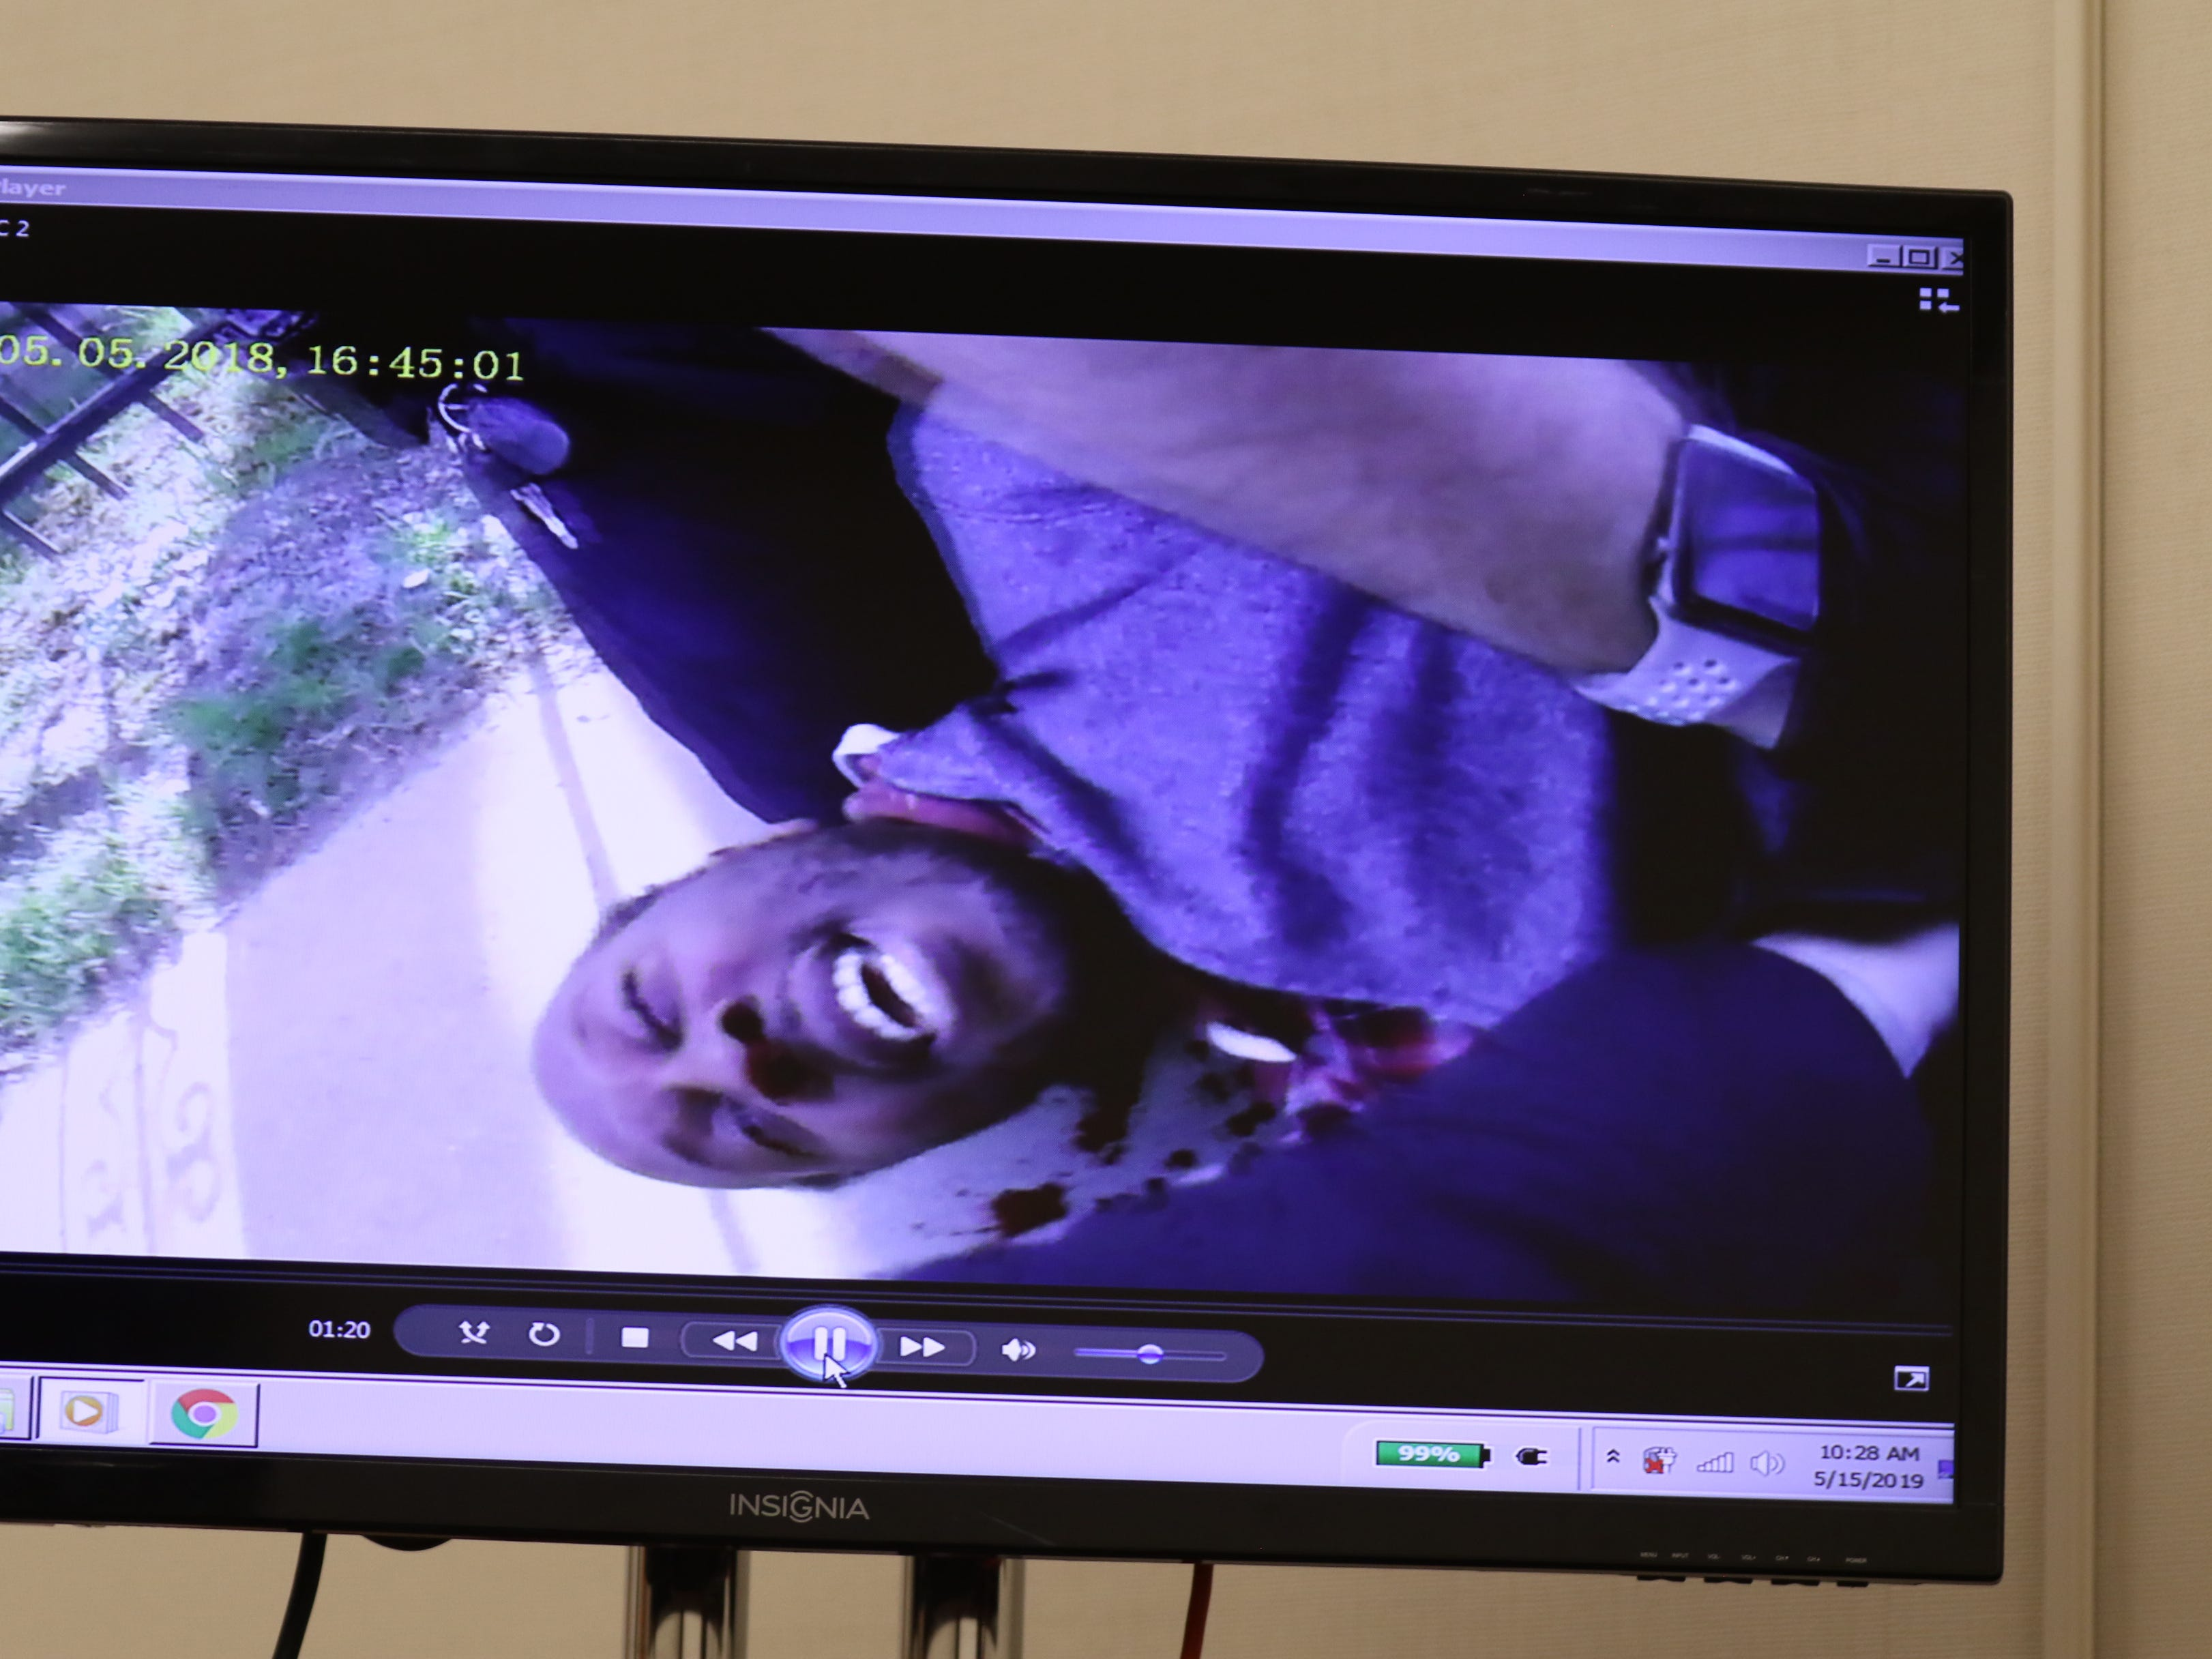 A screengrab showing Christopher Pate on the ground with blood beside his head.